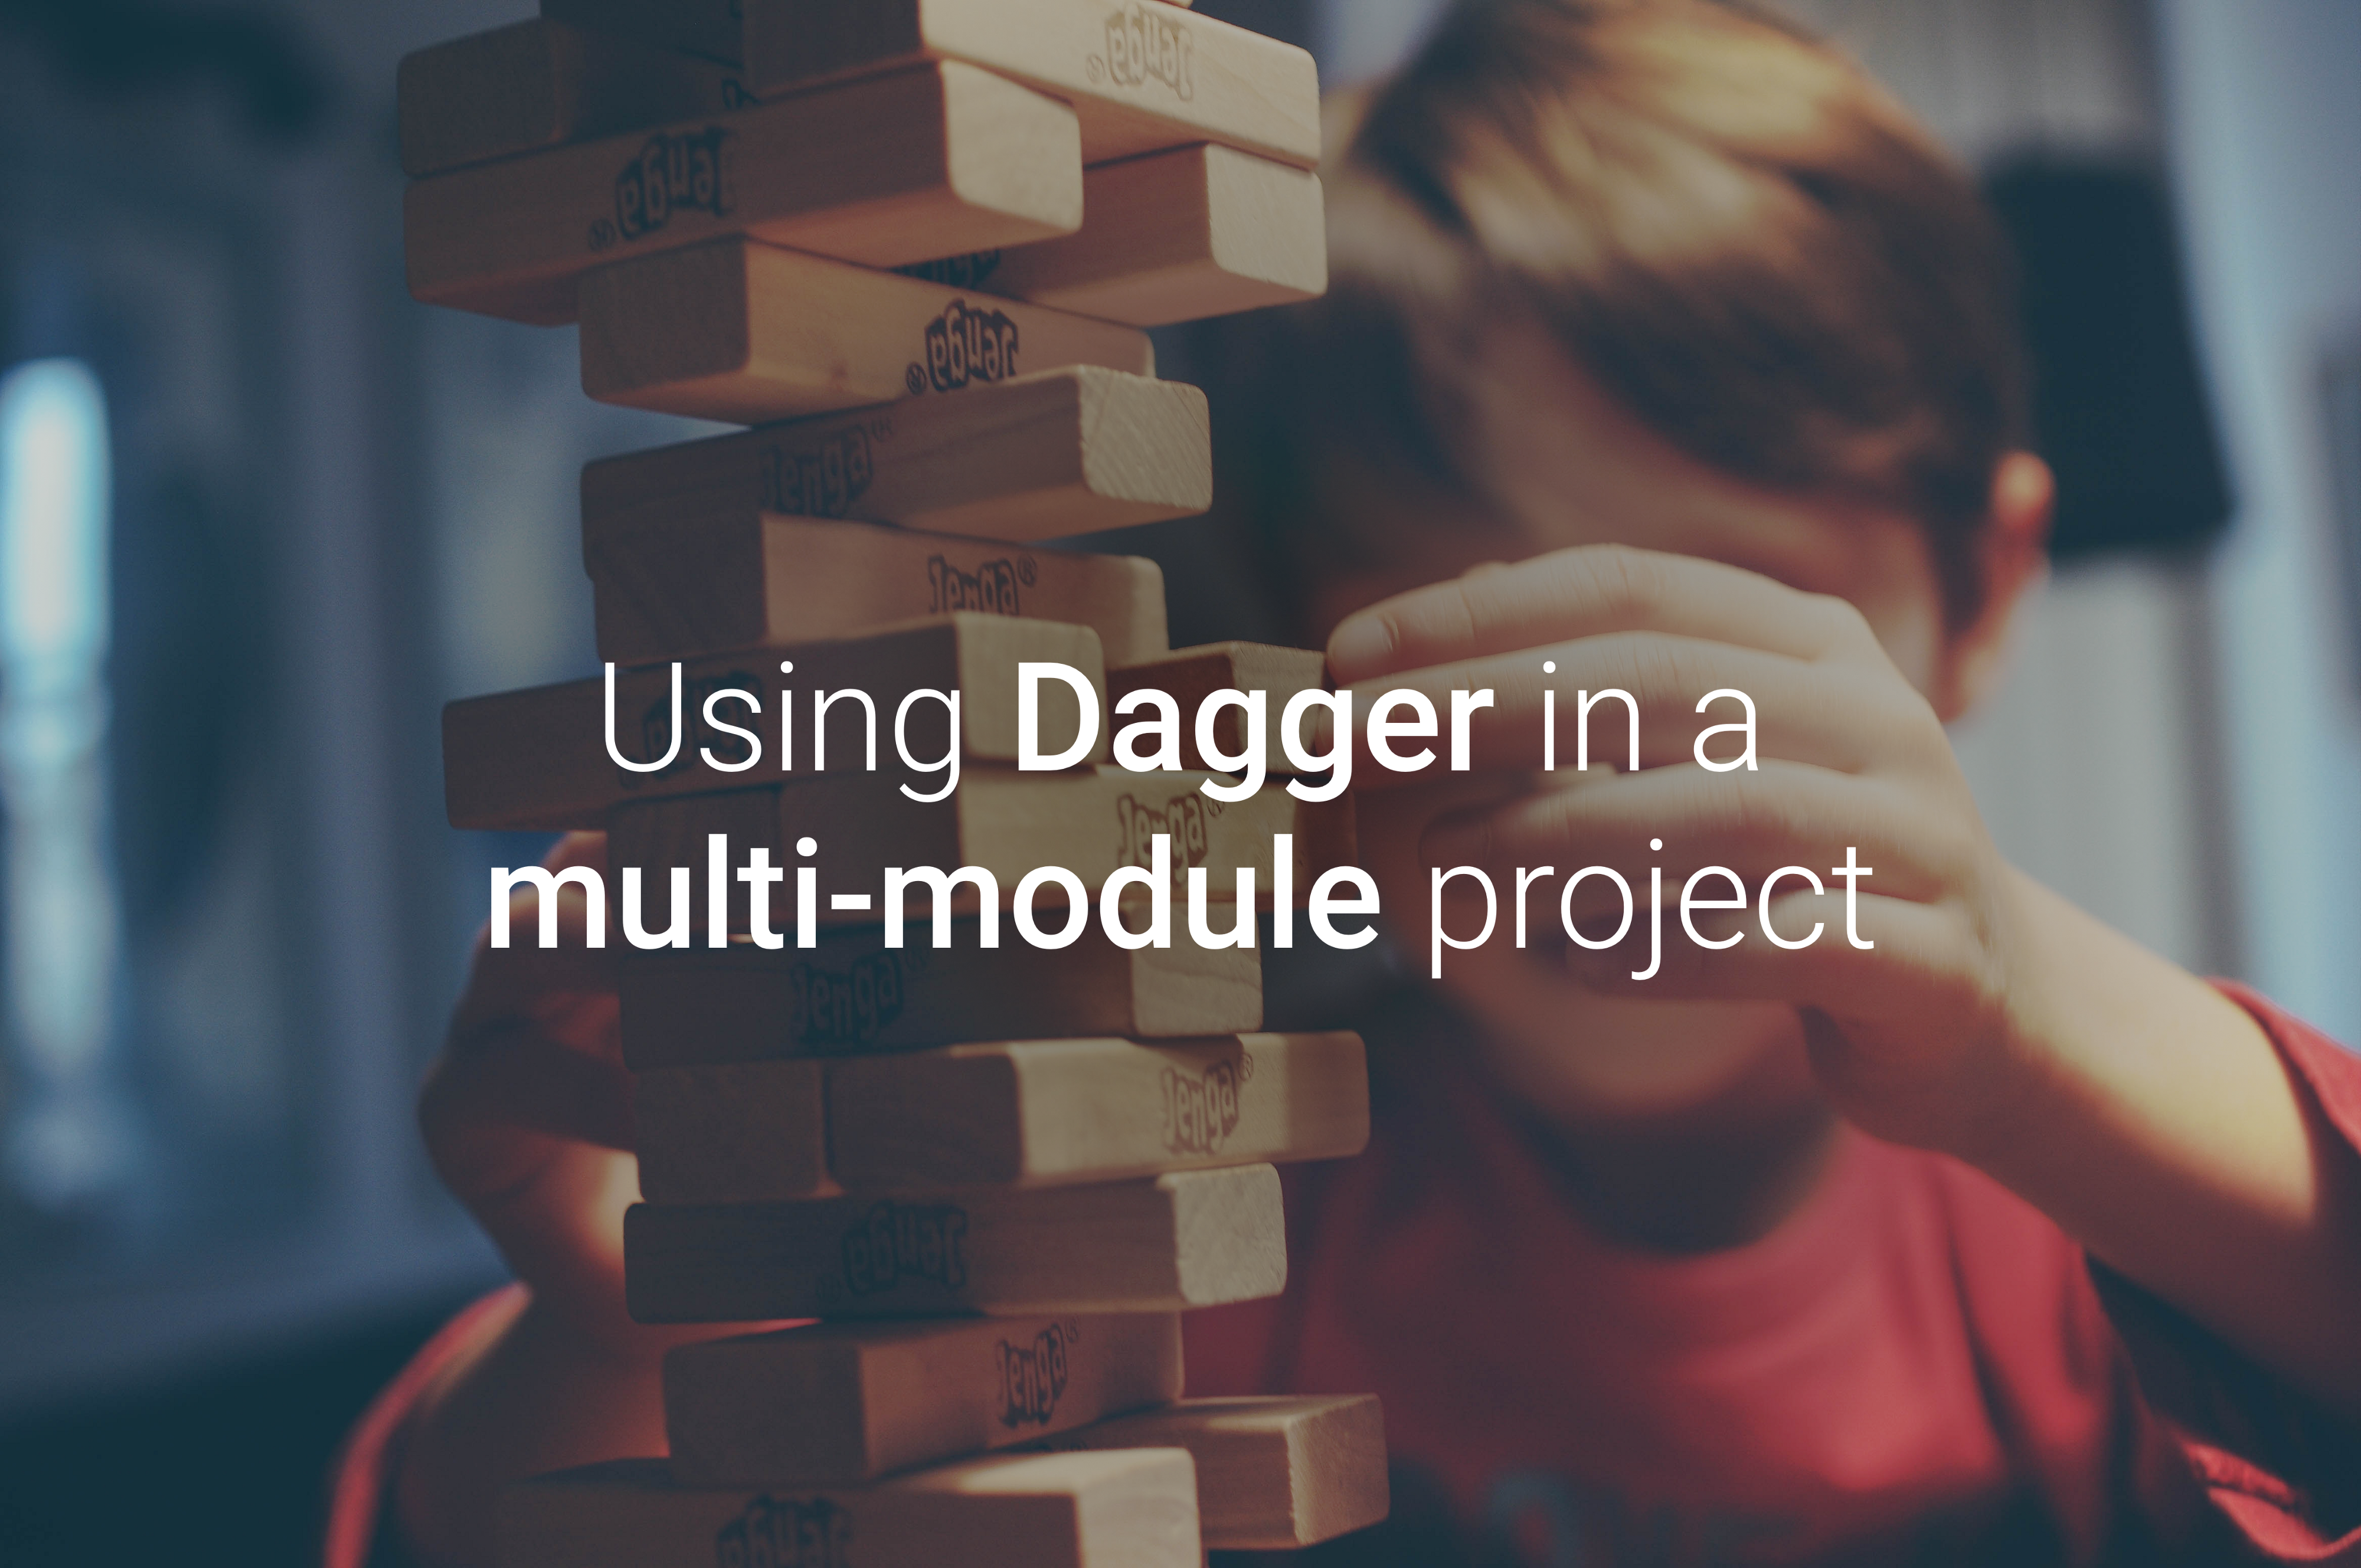 Using Dagger in a multi-module project - ProAndroidDev